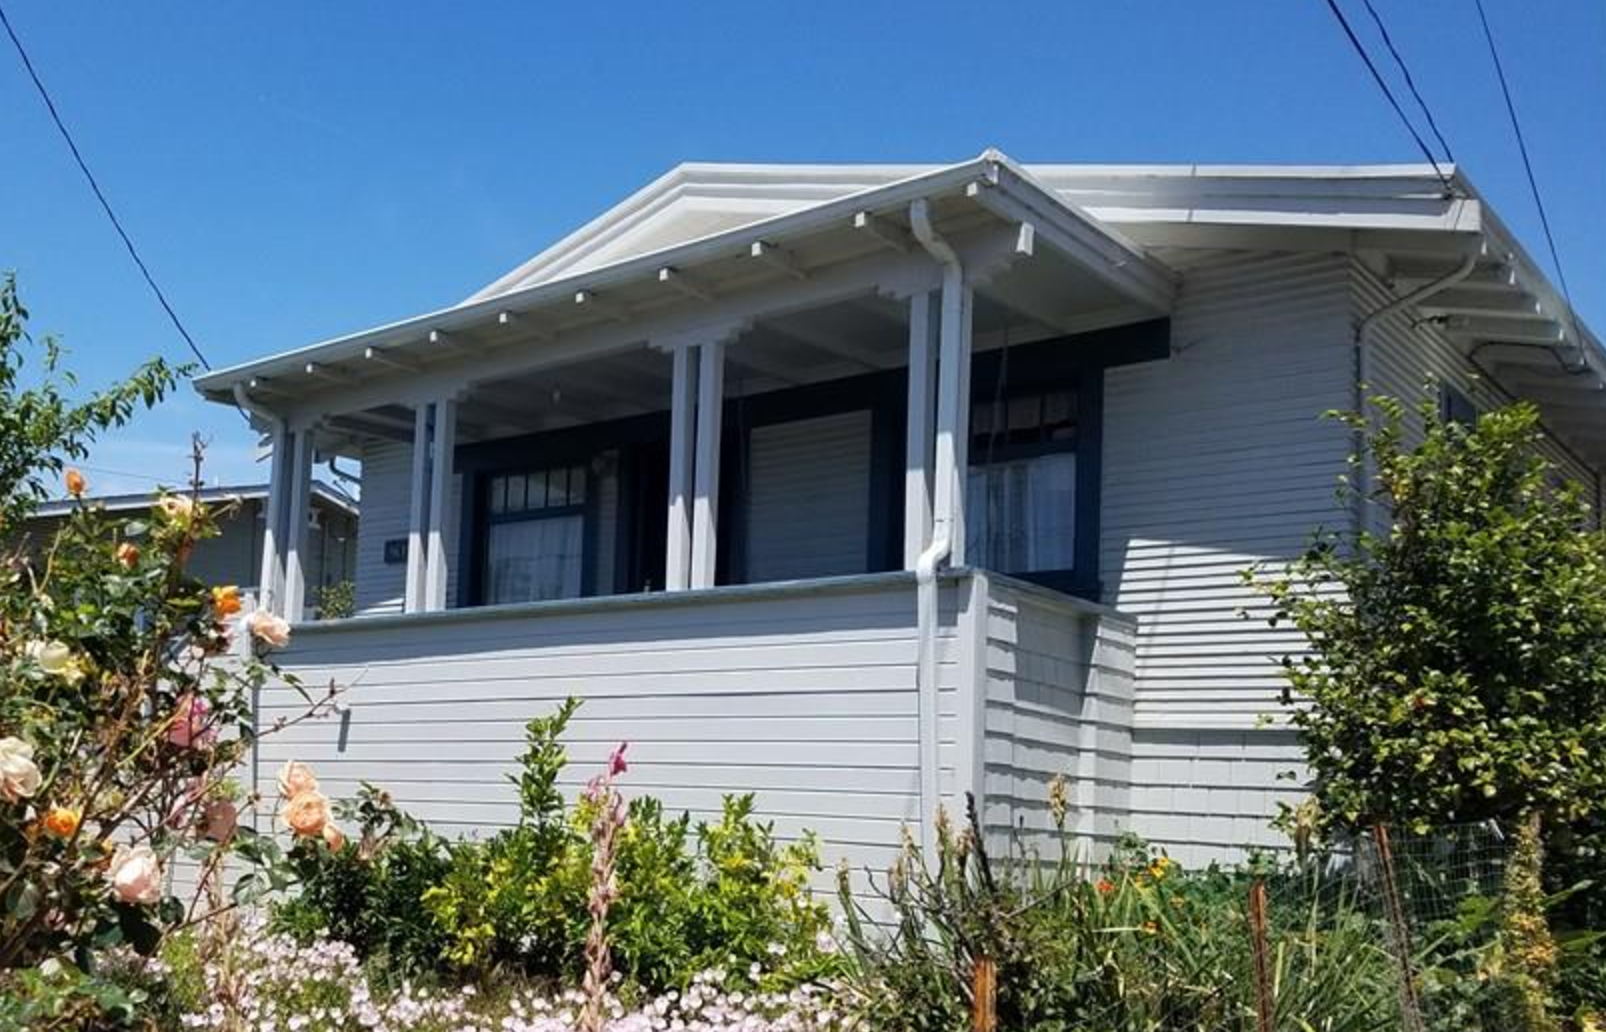 1612 MILL STREET - SAN LUIS OBSIPO   The 2 bedroom 1 bath cottage with separate studio sold in 18 days for $610,000 on 07/18/17. Originally priced at $609,000 this was a terrific value for a 5,000 sq. ft. lot so close to downtown.